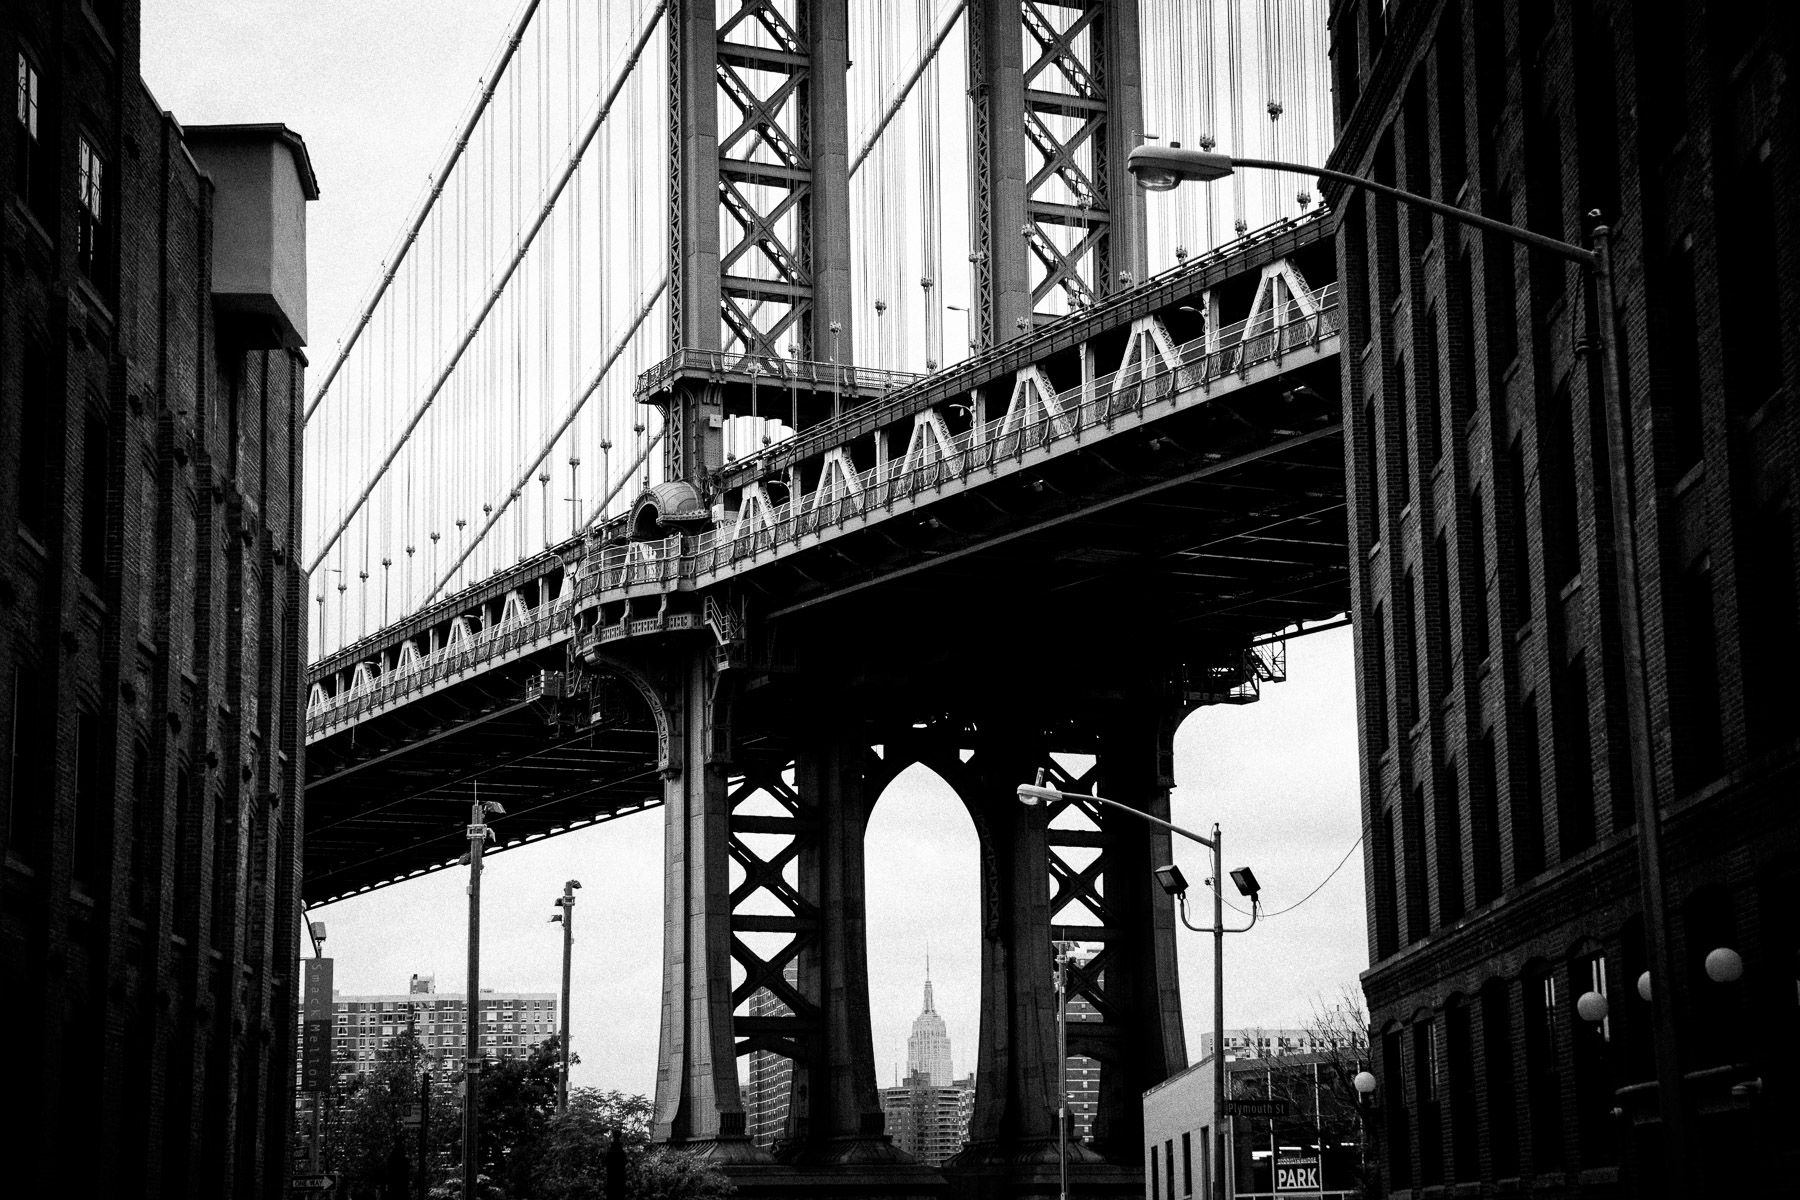 brooklyn-bridge-with-empire-state-building-photo-bw.jpg